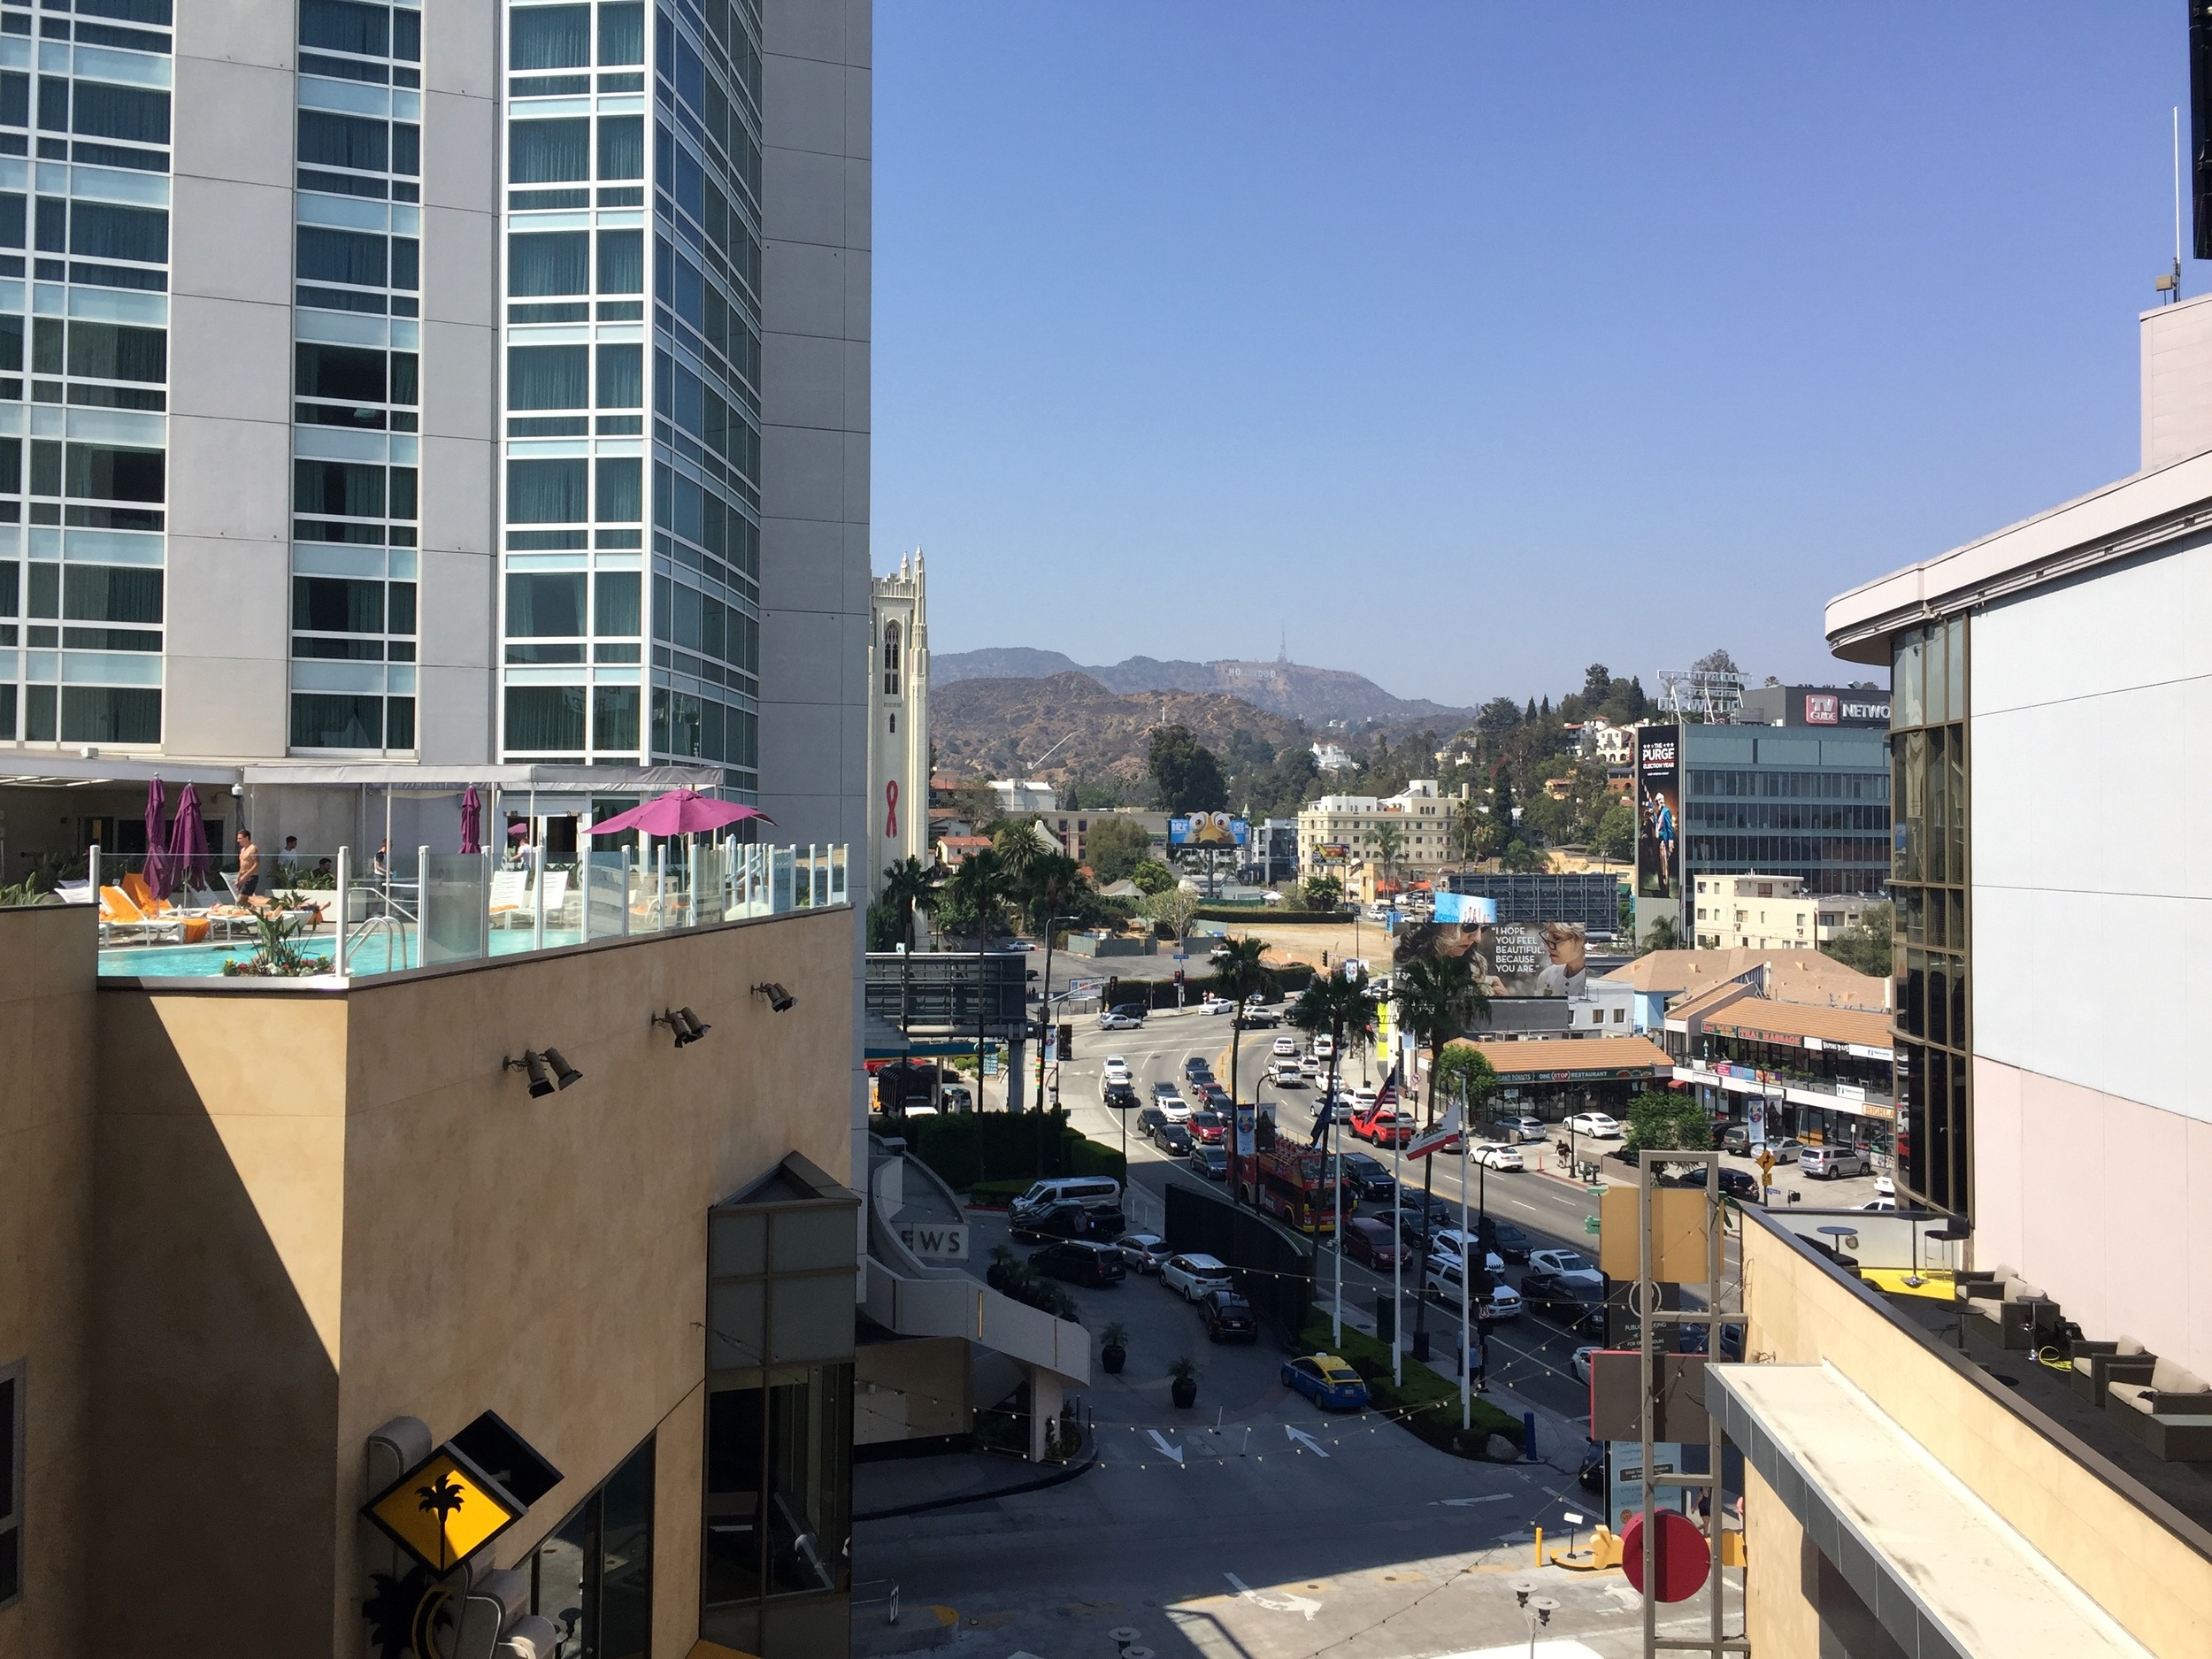 Dolby Theater at Hollywood & Highland is new site of NALIP Media Summit